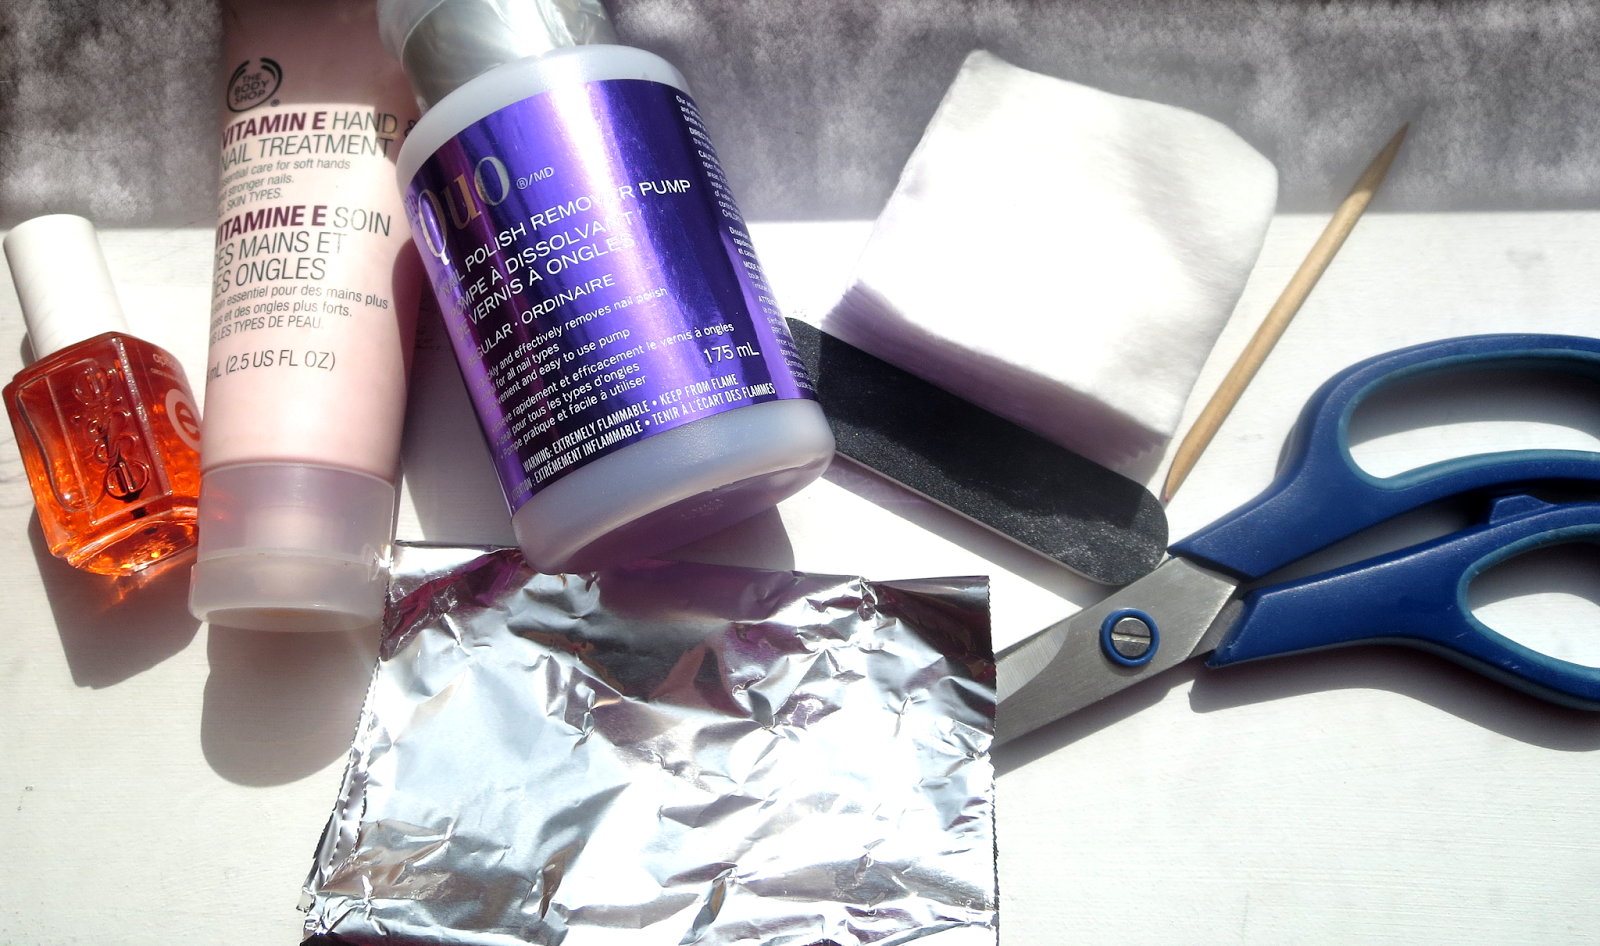 a picture of cuticle oil, hand cream, acetone remover, cotton pads, foil paper, scissors, cuticle stick